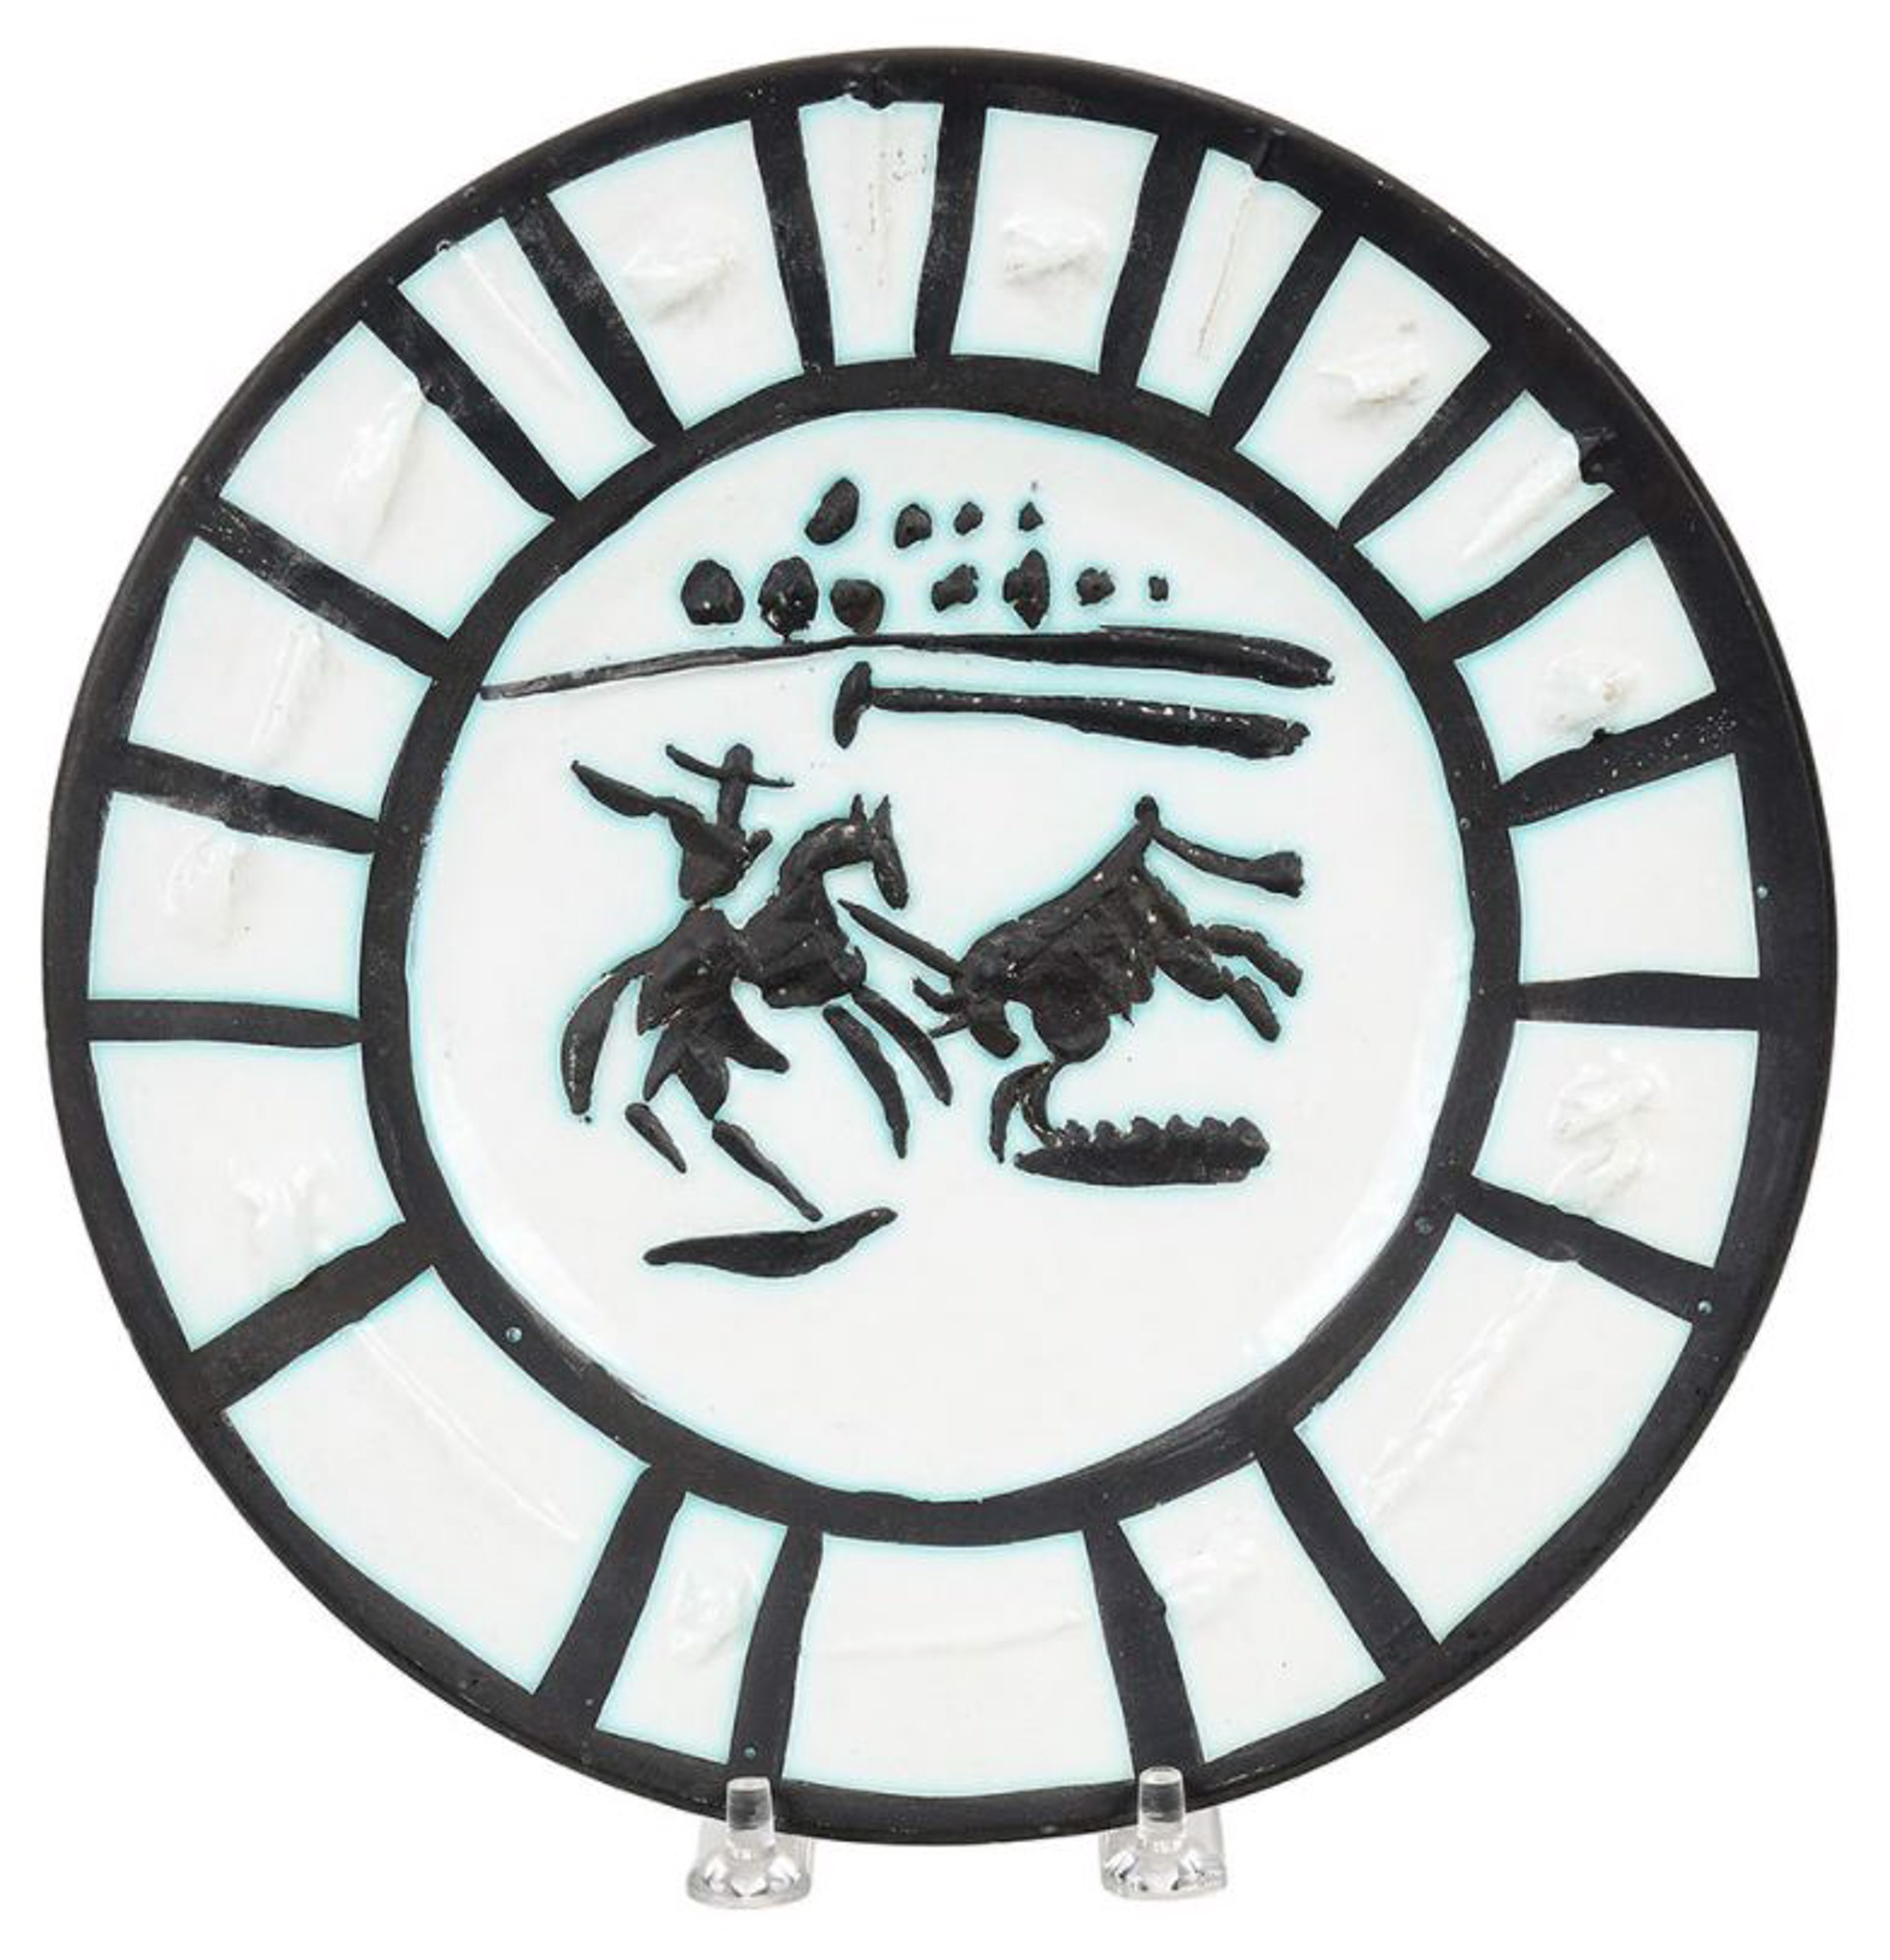 Circular White Pablo Picasso Ceramic Plate showing a hand drawn  Spanish bullfighter in black